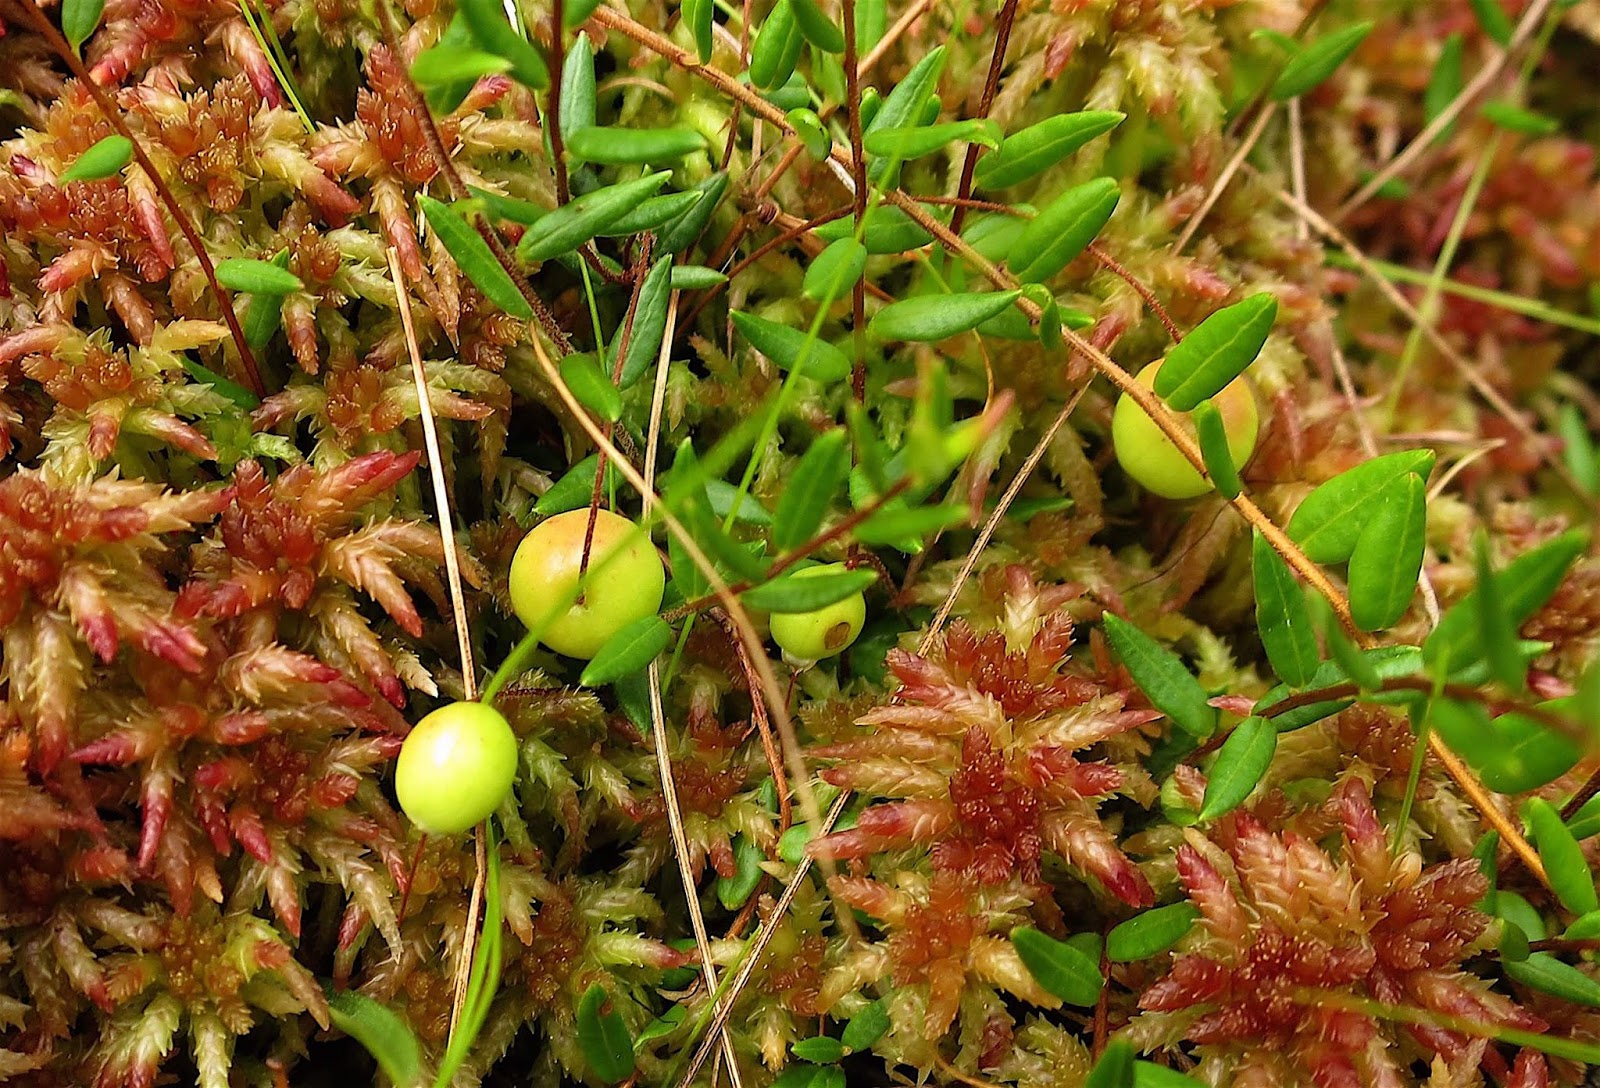 Saratoga woods and waterways: Blooms on the Bog, Bugs in the Blooms